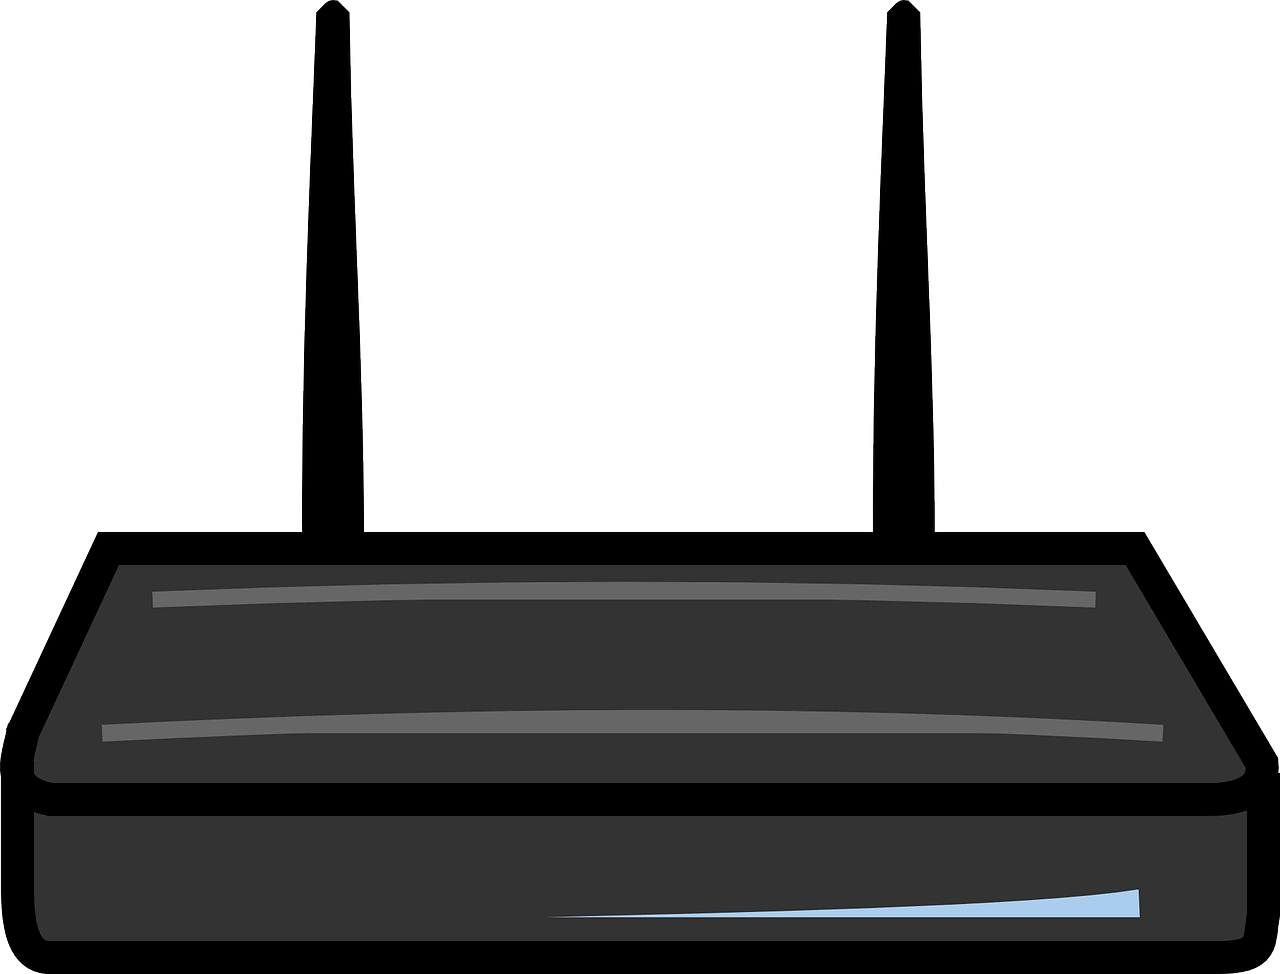 Best wireless router for large home bluegadgettooth for Localisation wifi